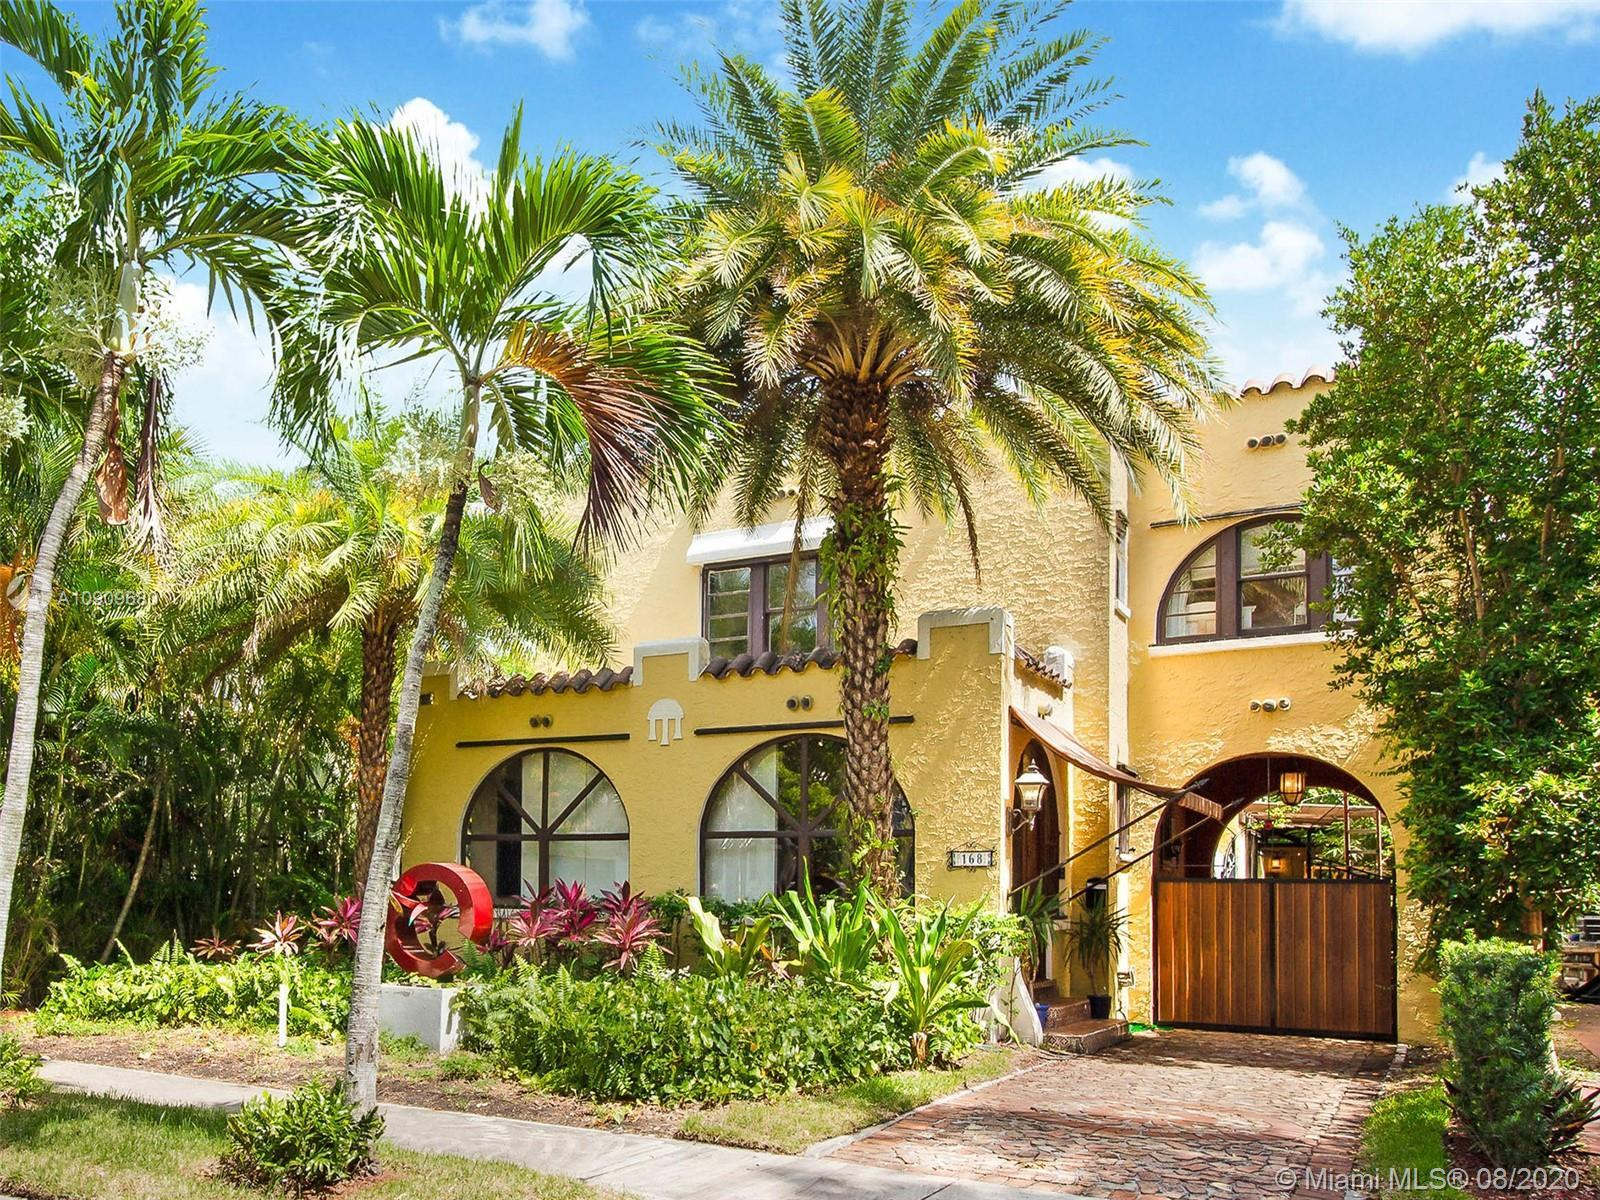 This Mediterranean-style home in the heart of Buena Vista East will immediately charm you with its h